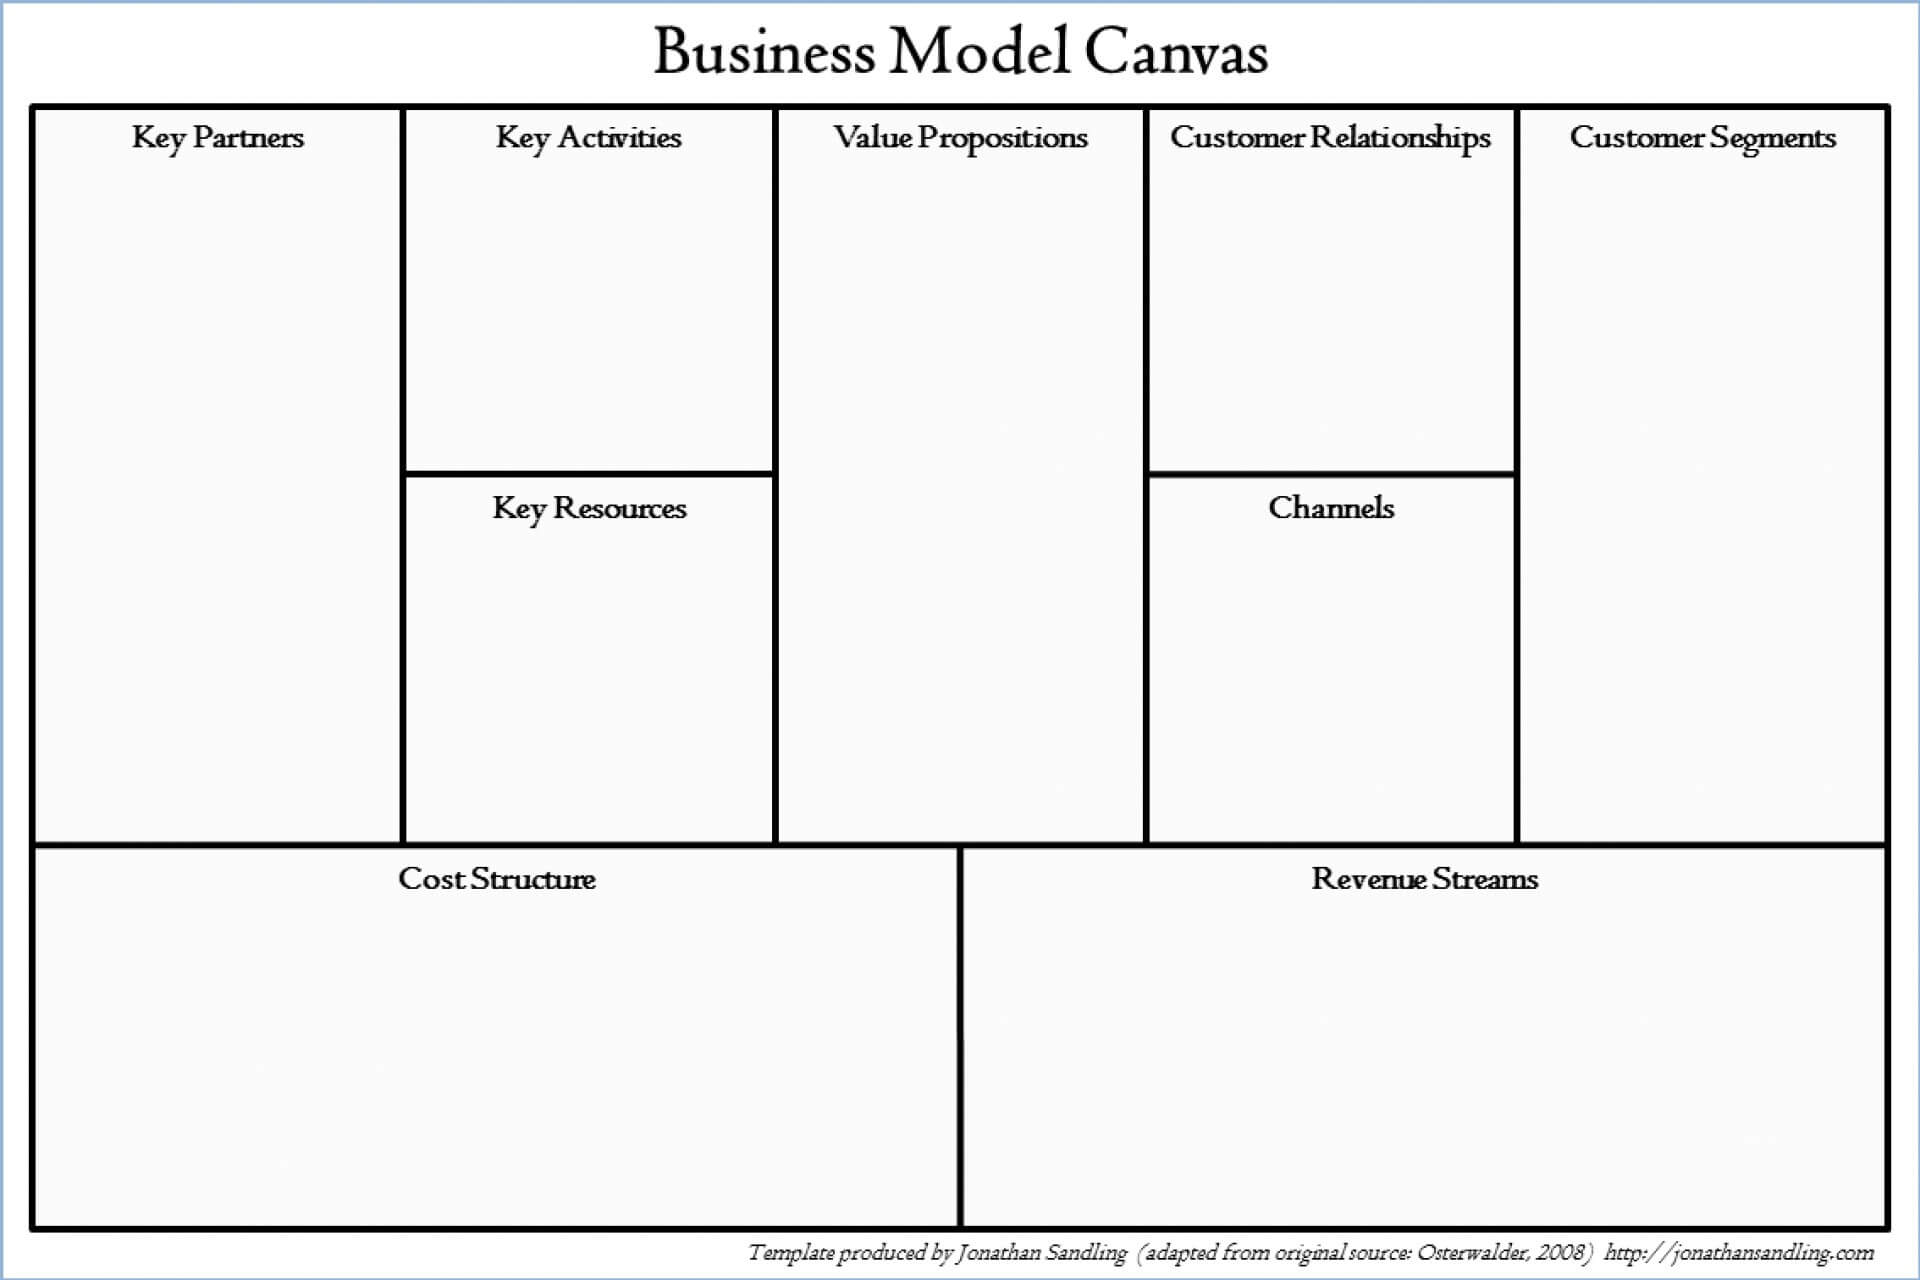 009 Business Model Canvas Ms Word Template Download Ideas With Regard To Business Canvas Word Template